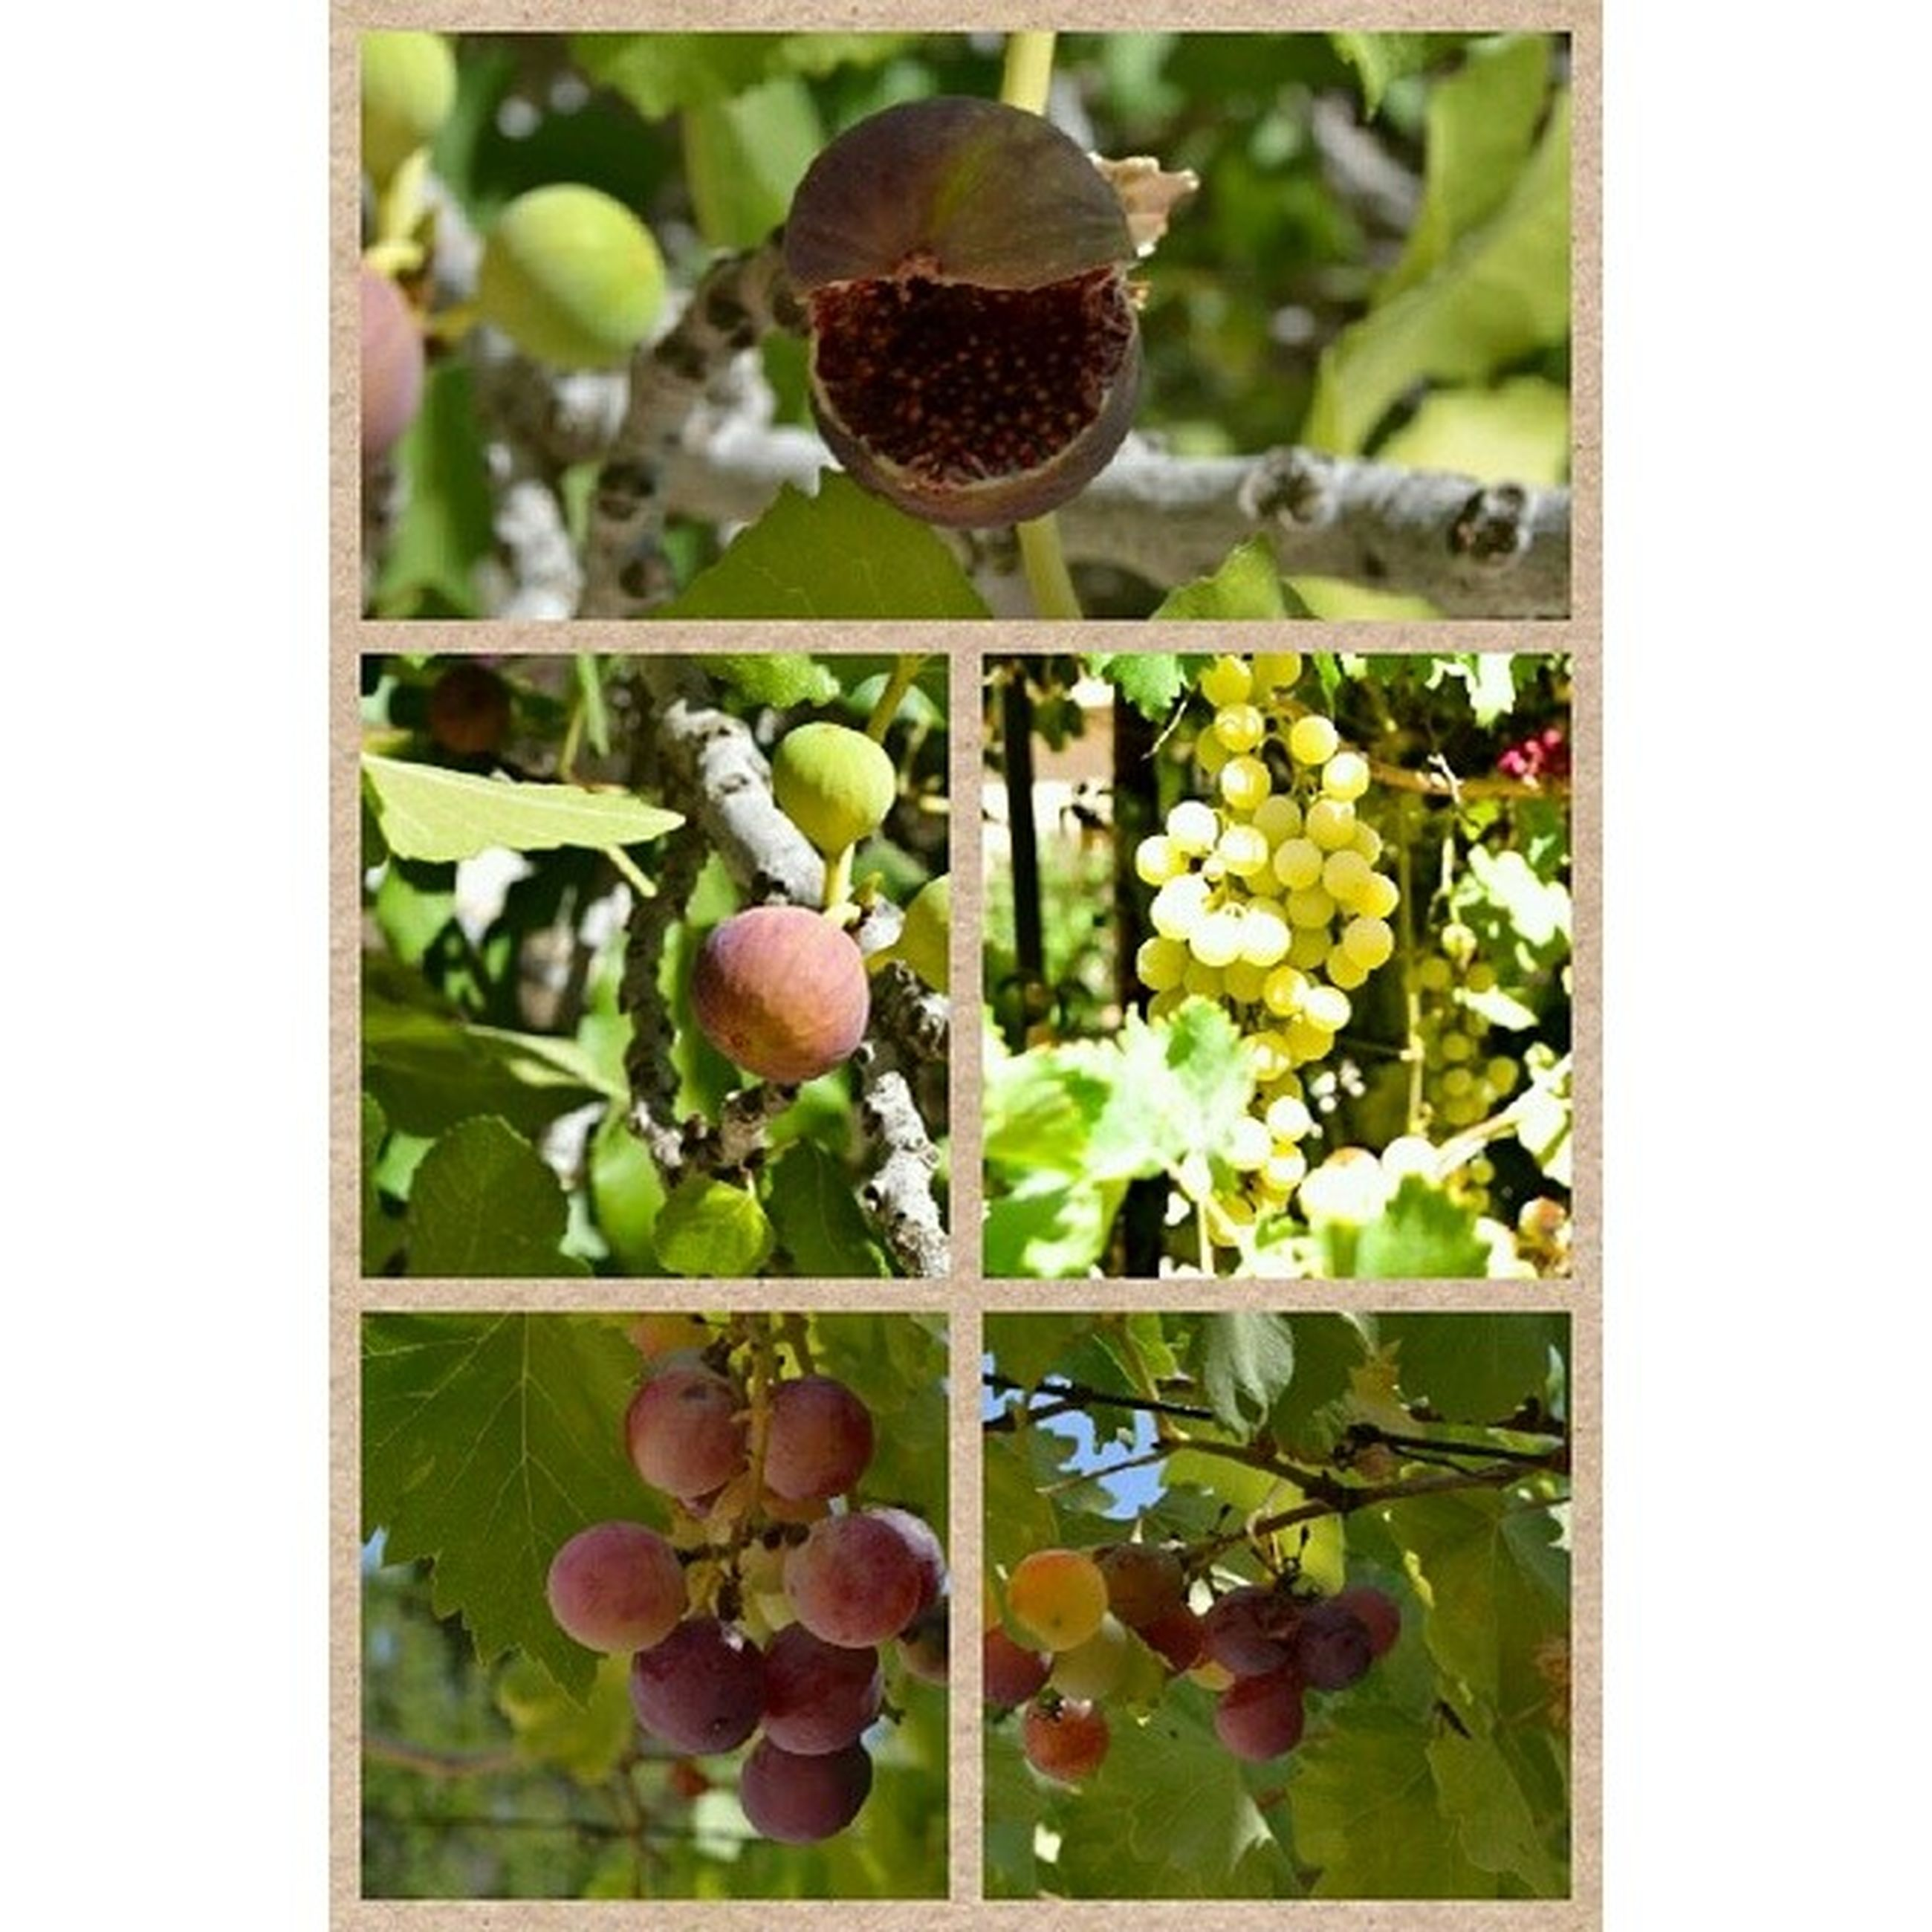 transfer print, food and drink, fruit, healthy eating, food, auto post production filter, freshness, growth, green color, close-up, leaf, ripe, organic, bunch, grape, nature, abundance, agriculture, apple, tree